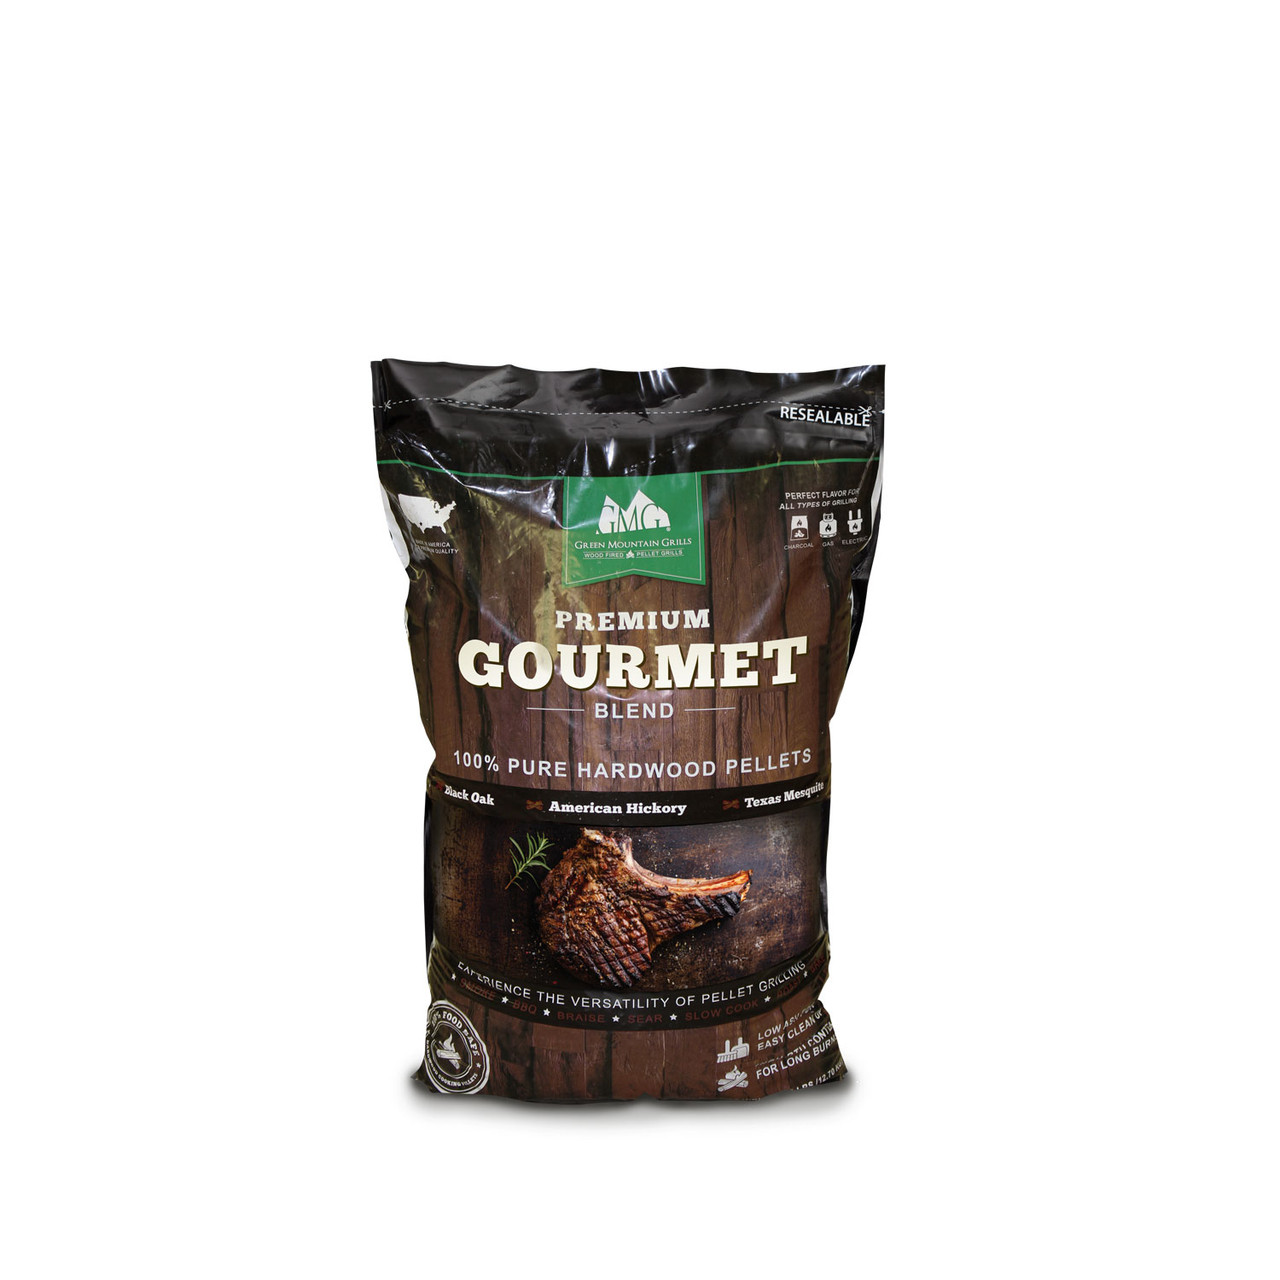 GREEN MOUNTAIN GRILLS GENUINE - GMG2007 GOURMET BLEND PELLETS 8 POUND BAG